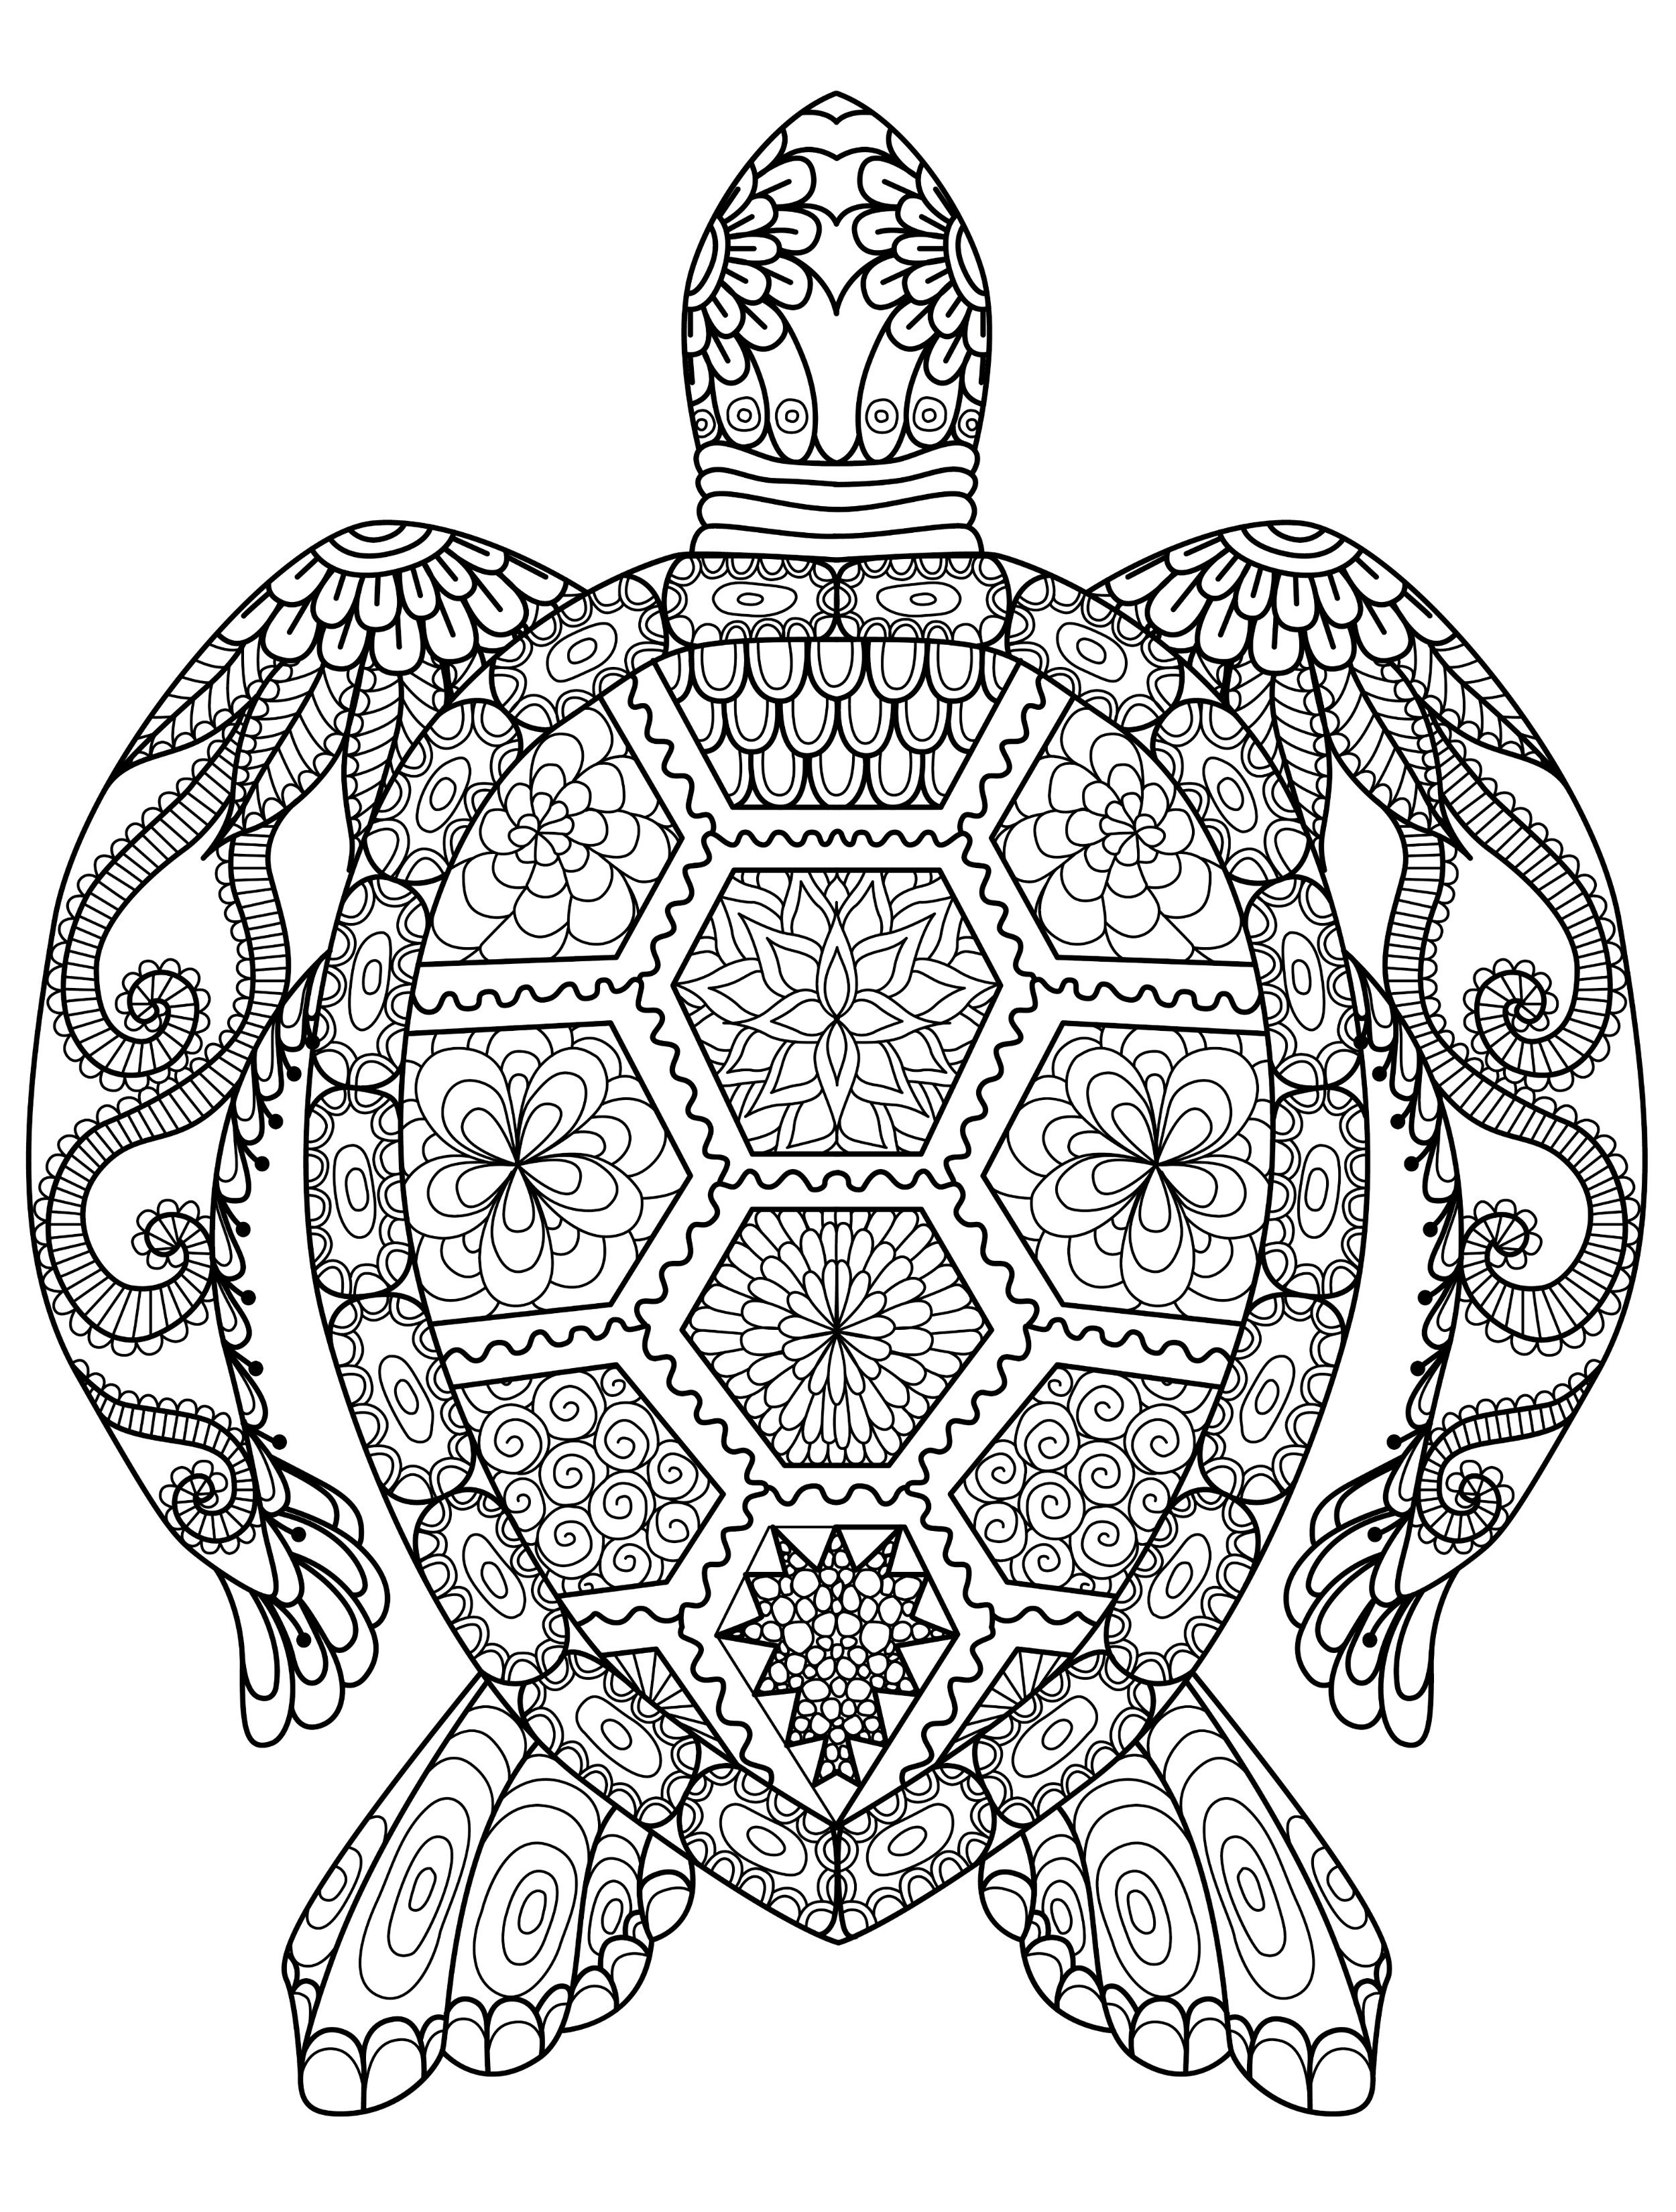 Elephant Adult Coloring Pages Inspirational Photos Of Elephant Coloring Pages For Adults Oil